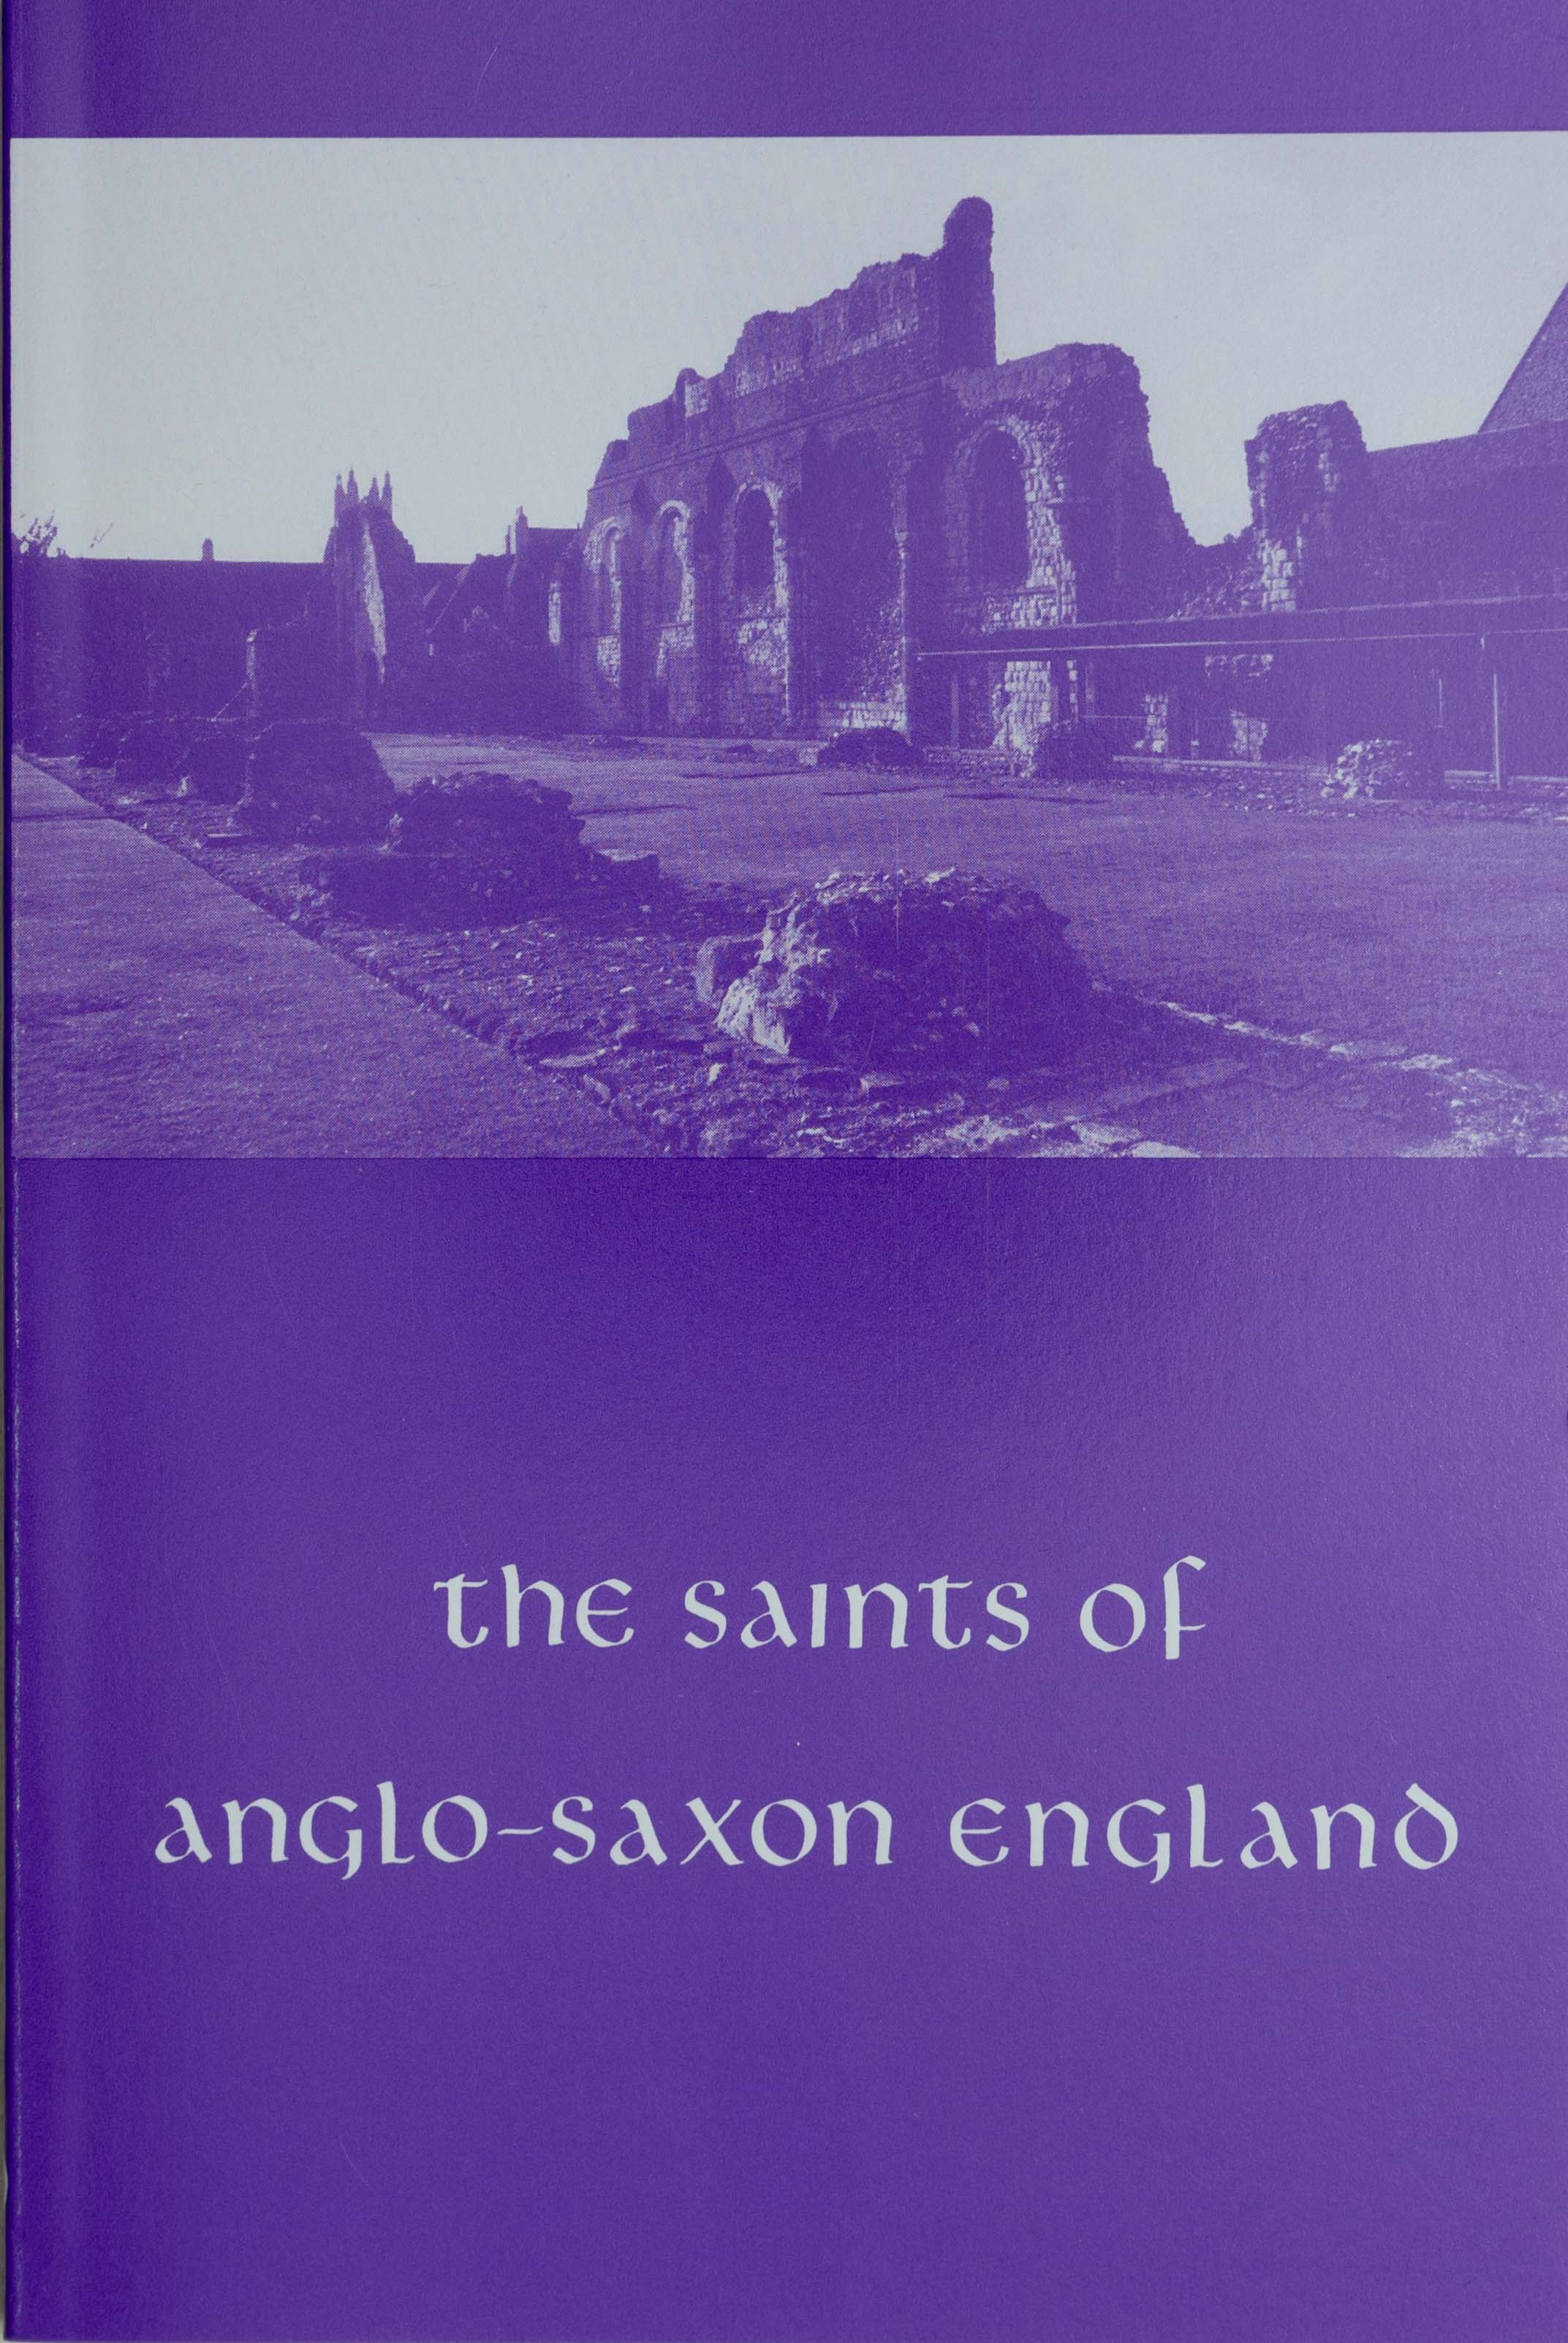 The Saints of Anglo-Saxon England Vol. 3: 9th-11th centuries